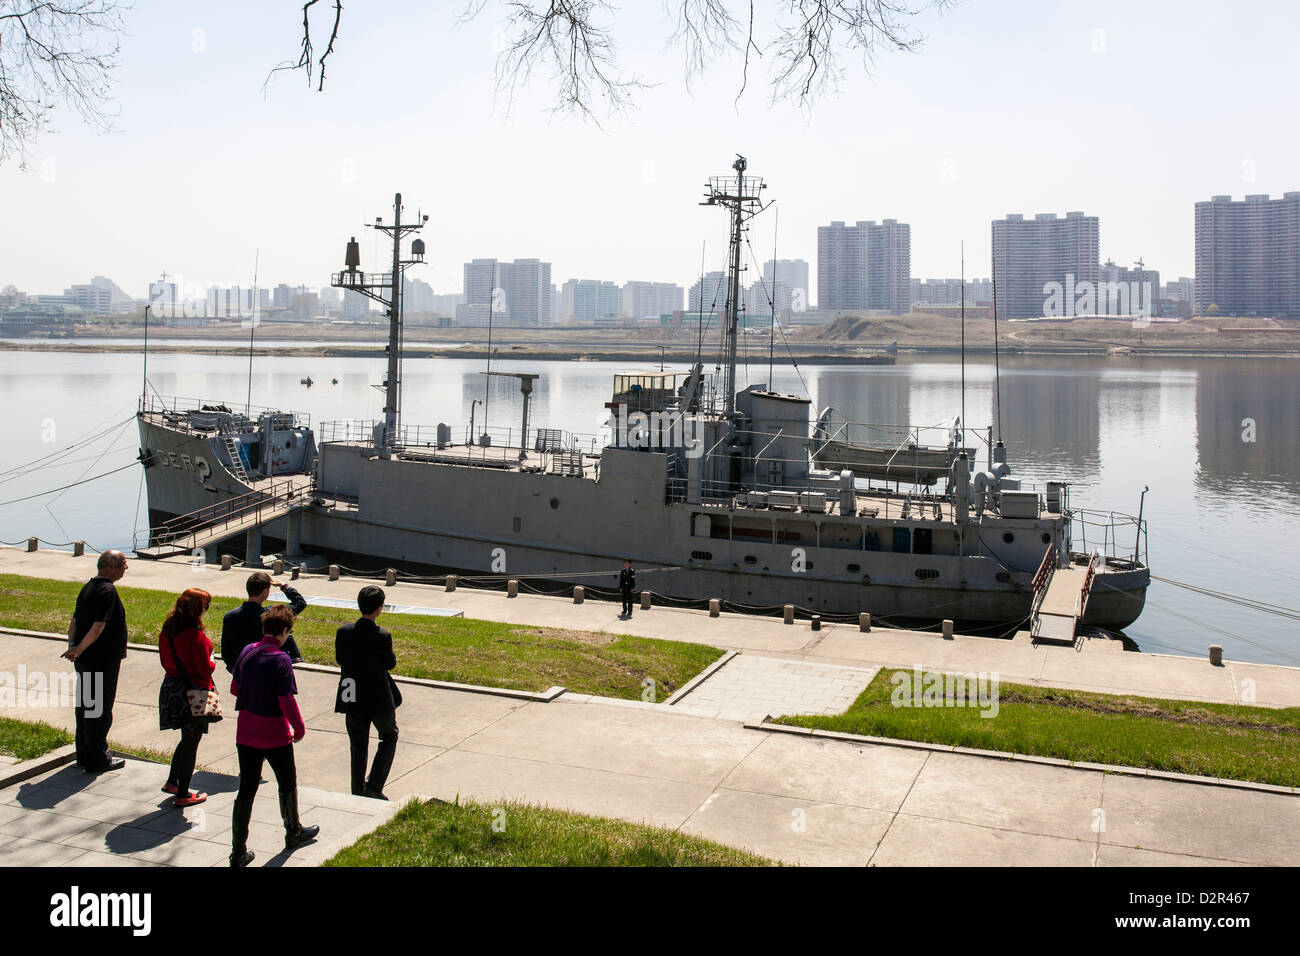 Pueblo, the American Spy Ship captured by the North Koreans in the 1960s, Pyongyang, North Korea - Stock Image